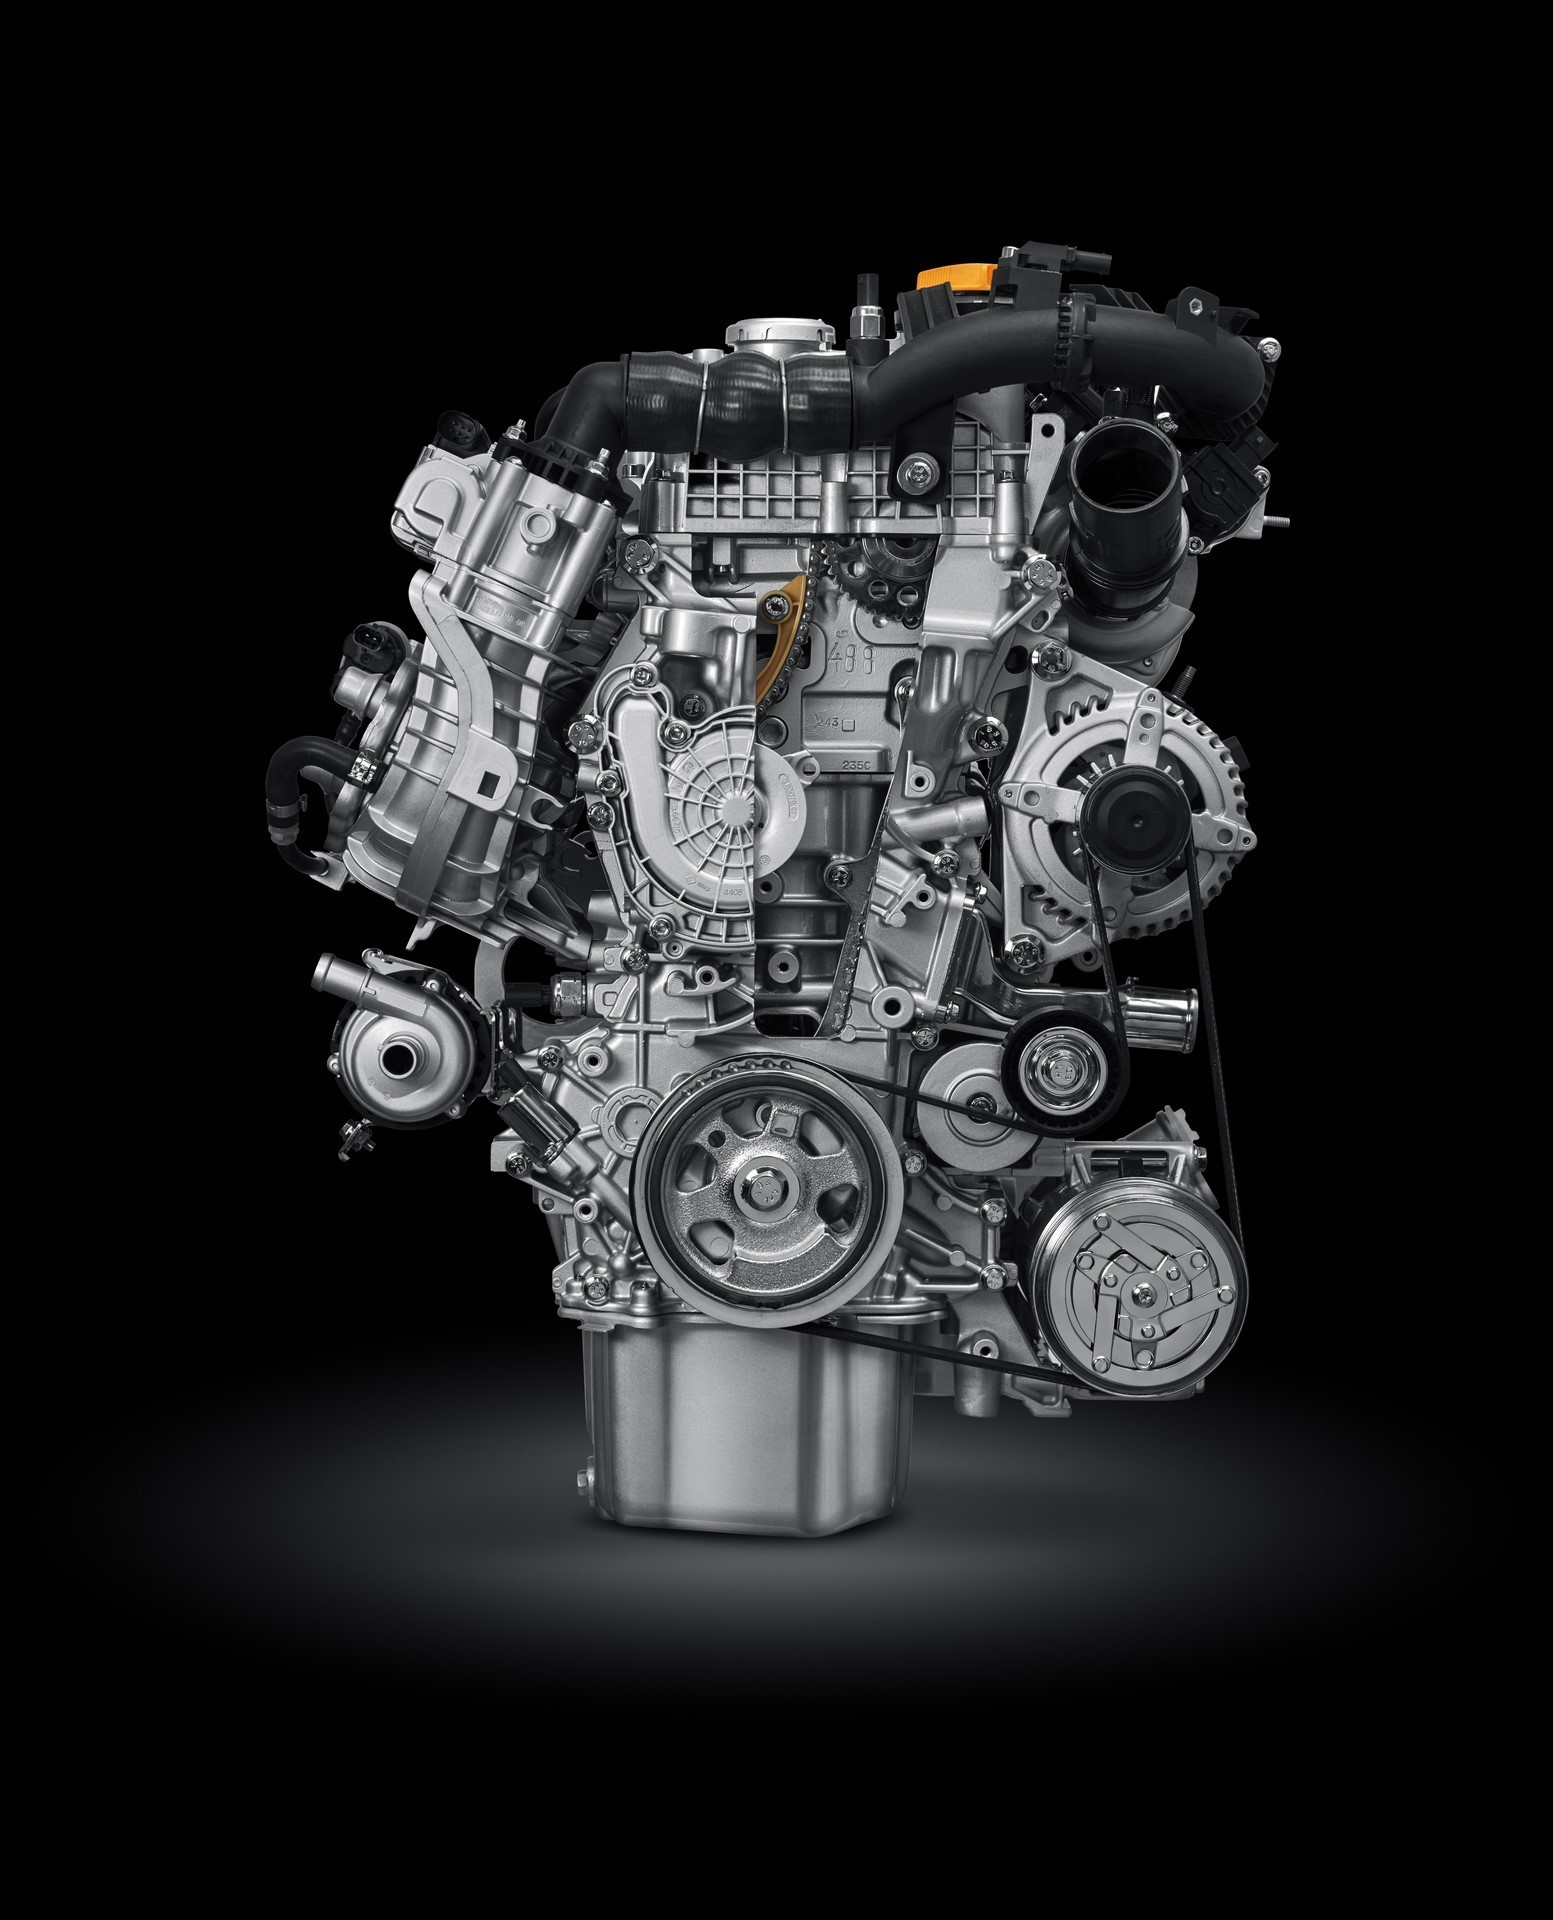 180828_Fiat_New-10L-Turbo-3-cylinder-120HP_02